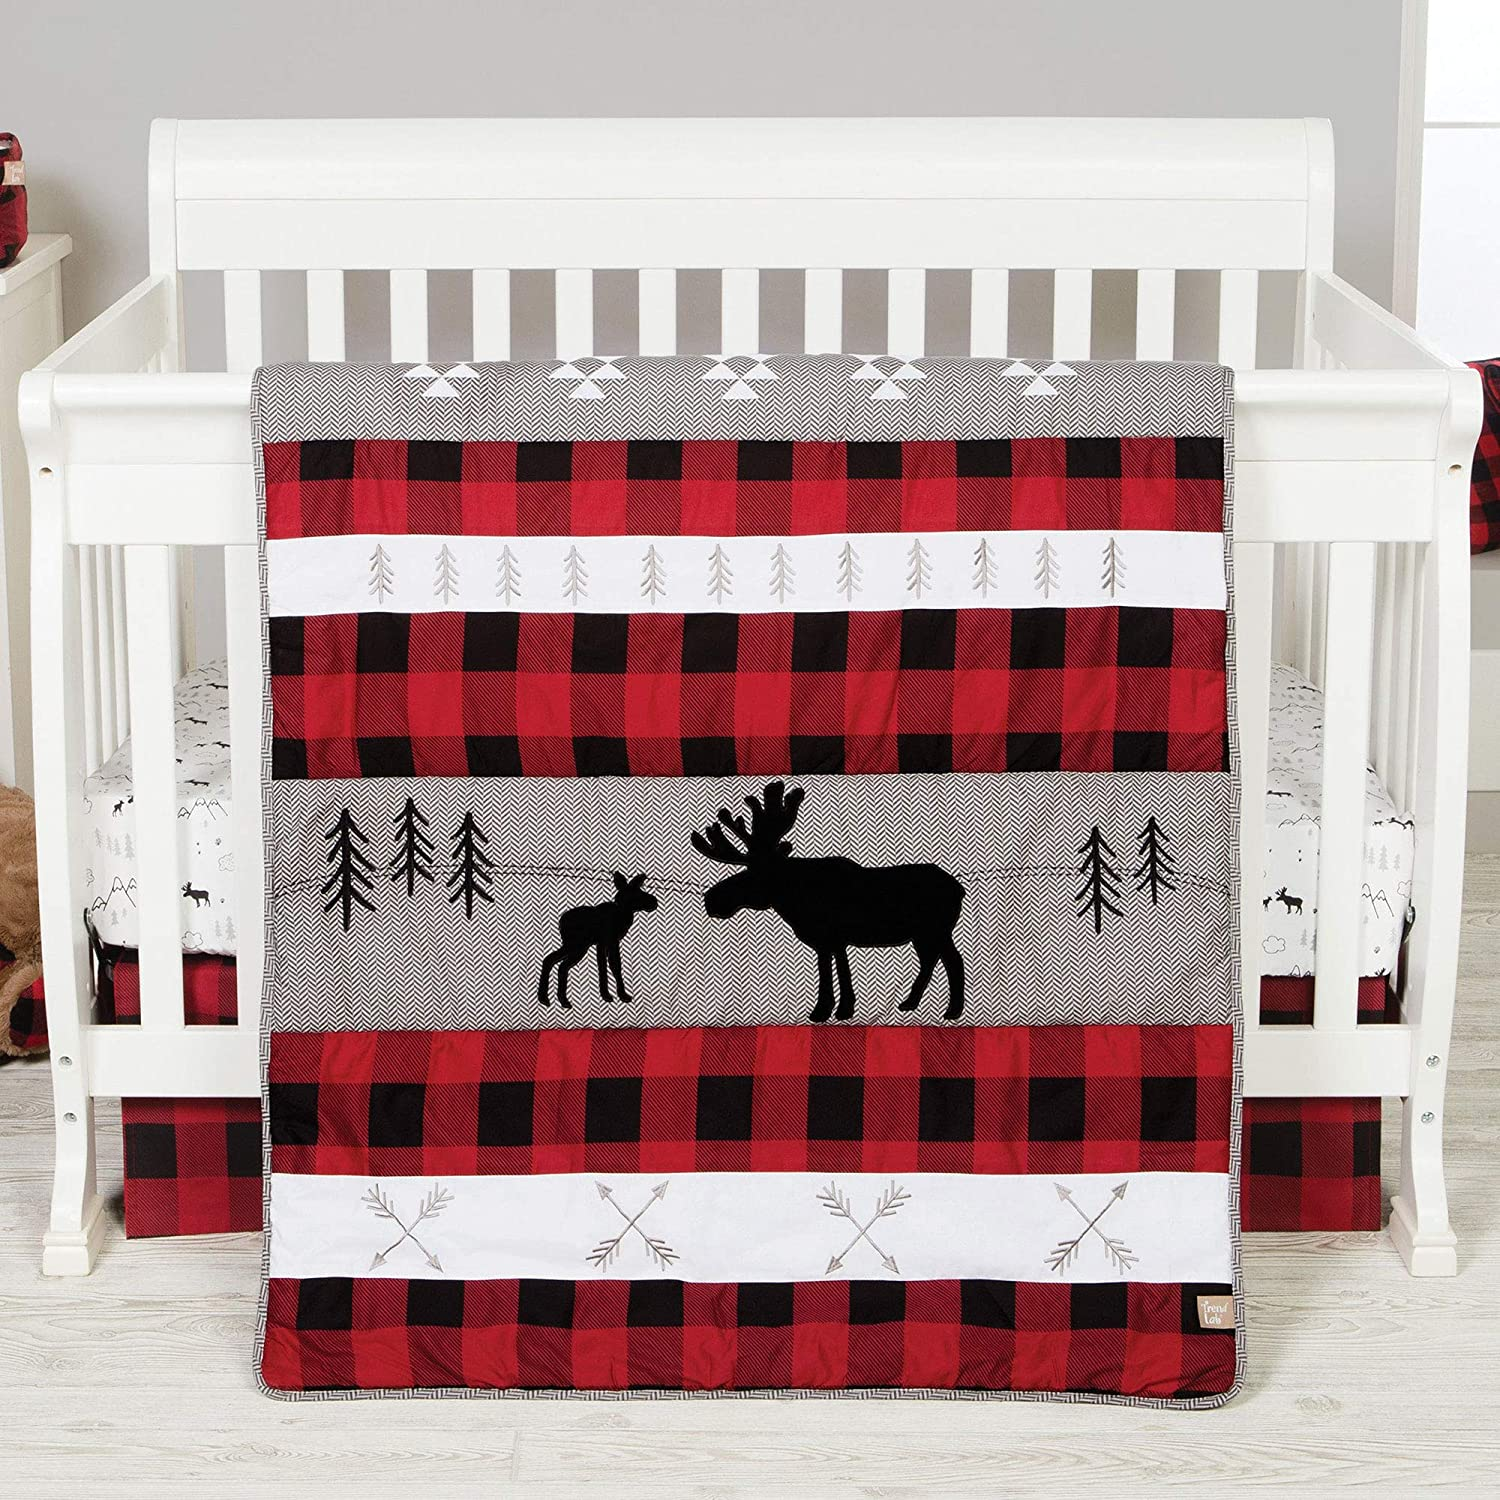 Lumberjack Moose Forest ! Super beauty product restock quality top! quality assurance Animal Theme Plaid 3 Baby Piece Buffalo